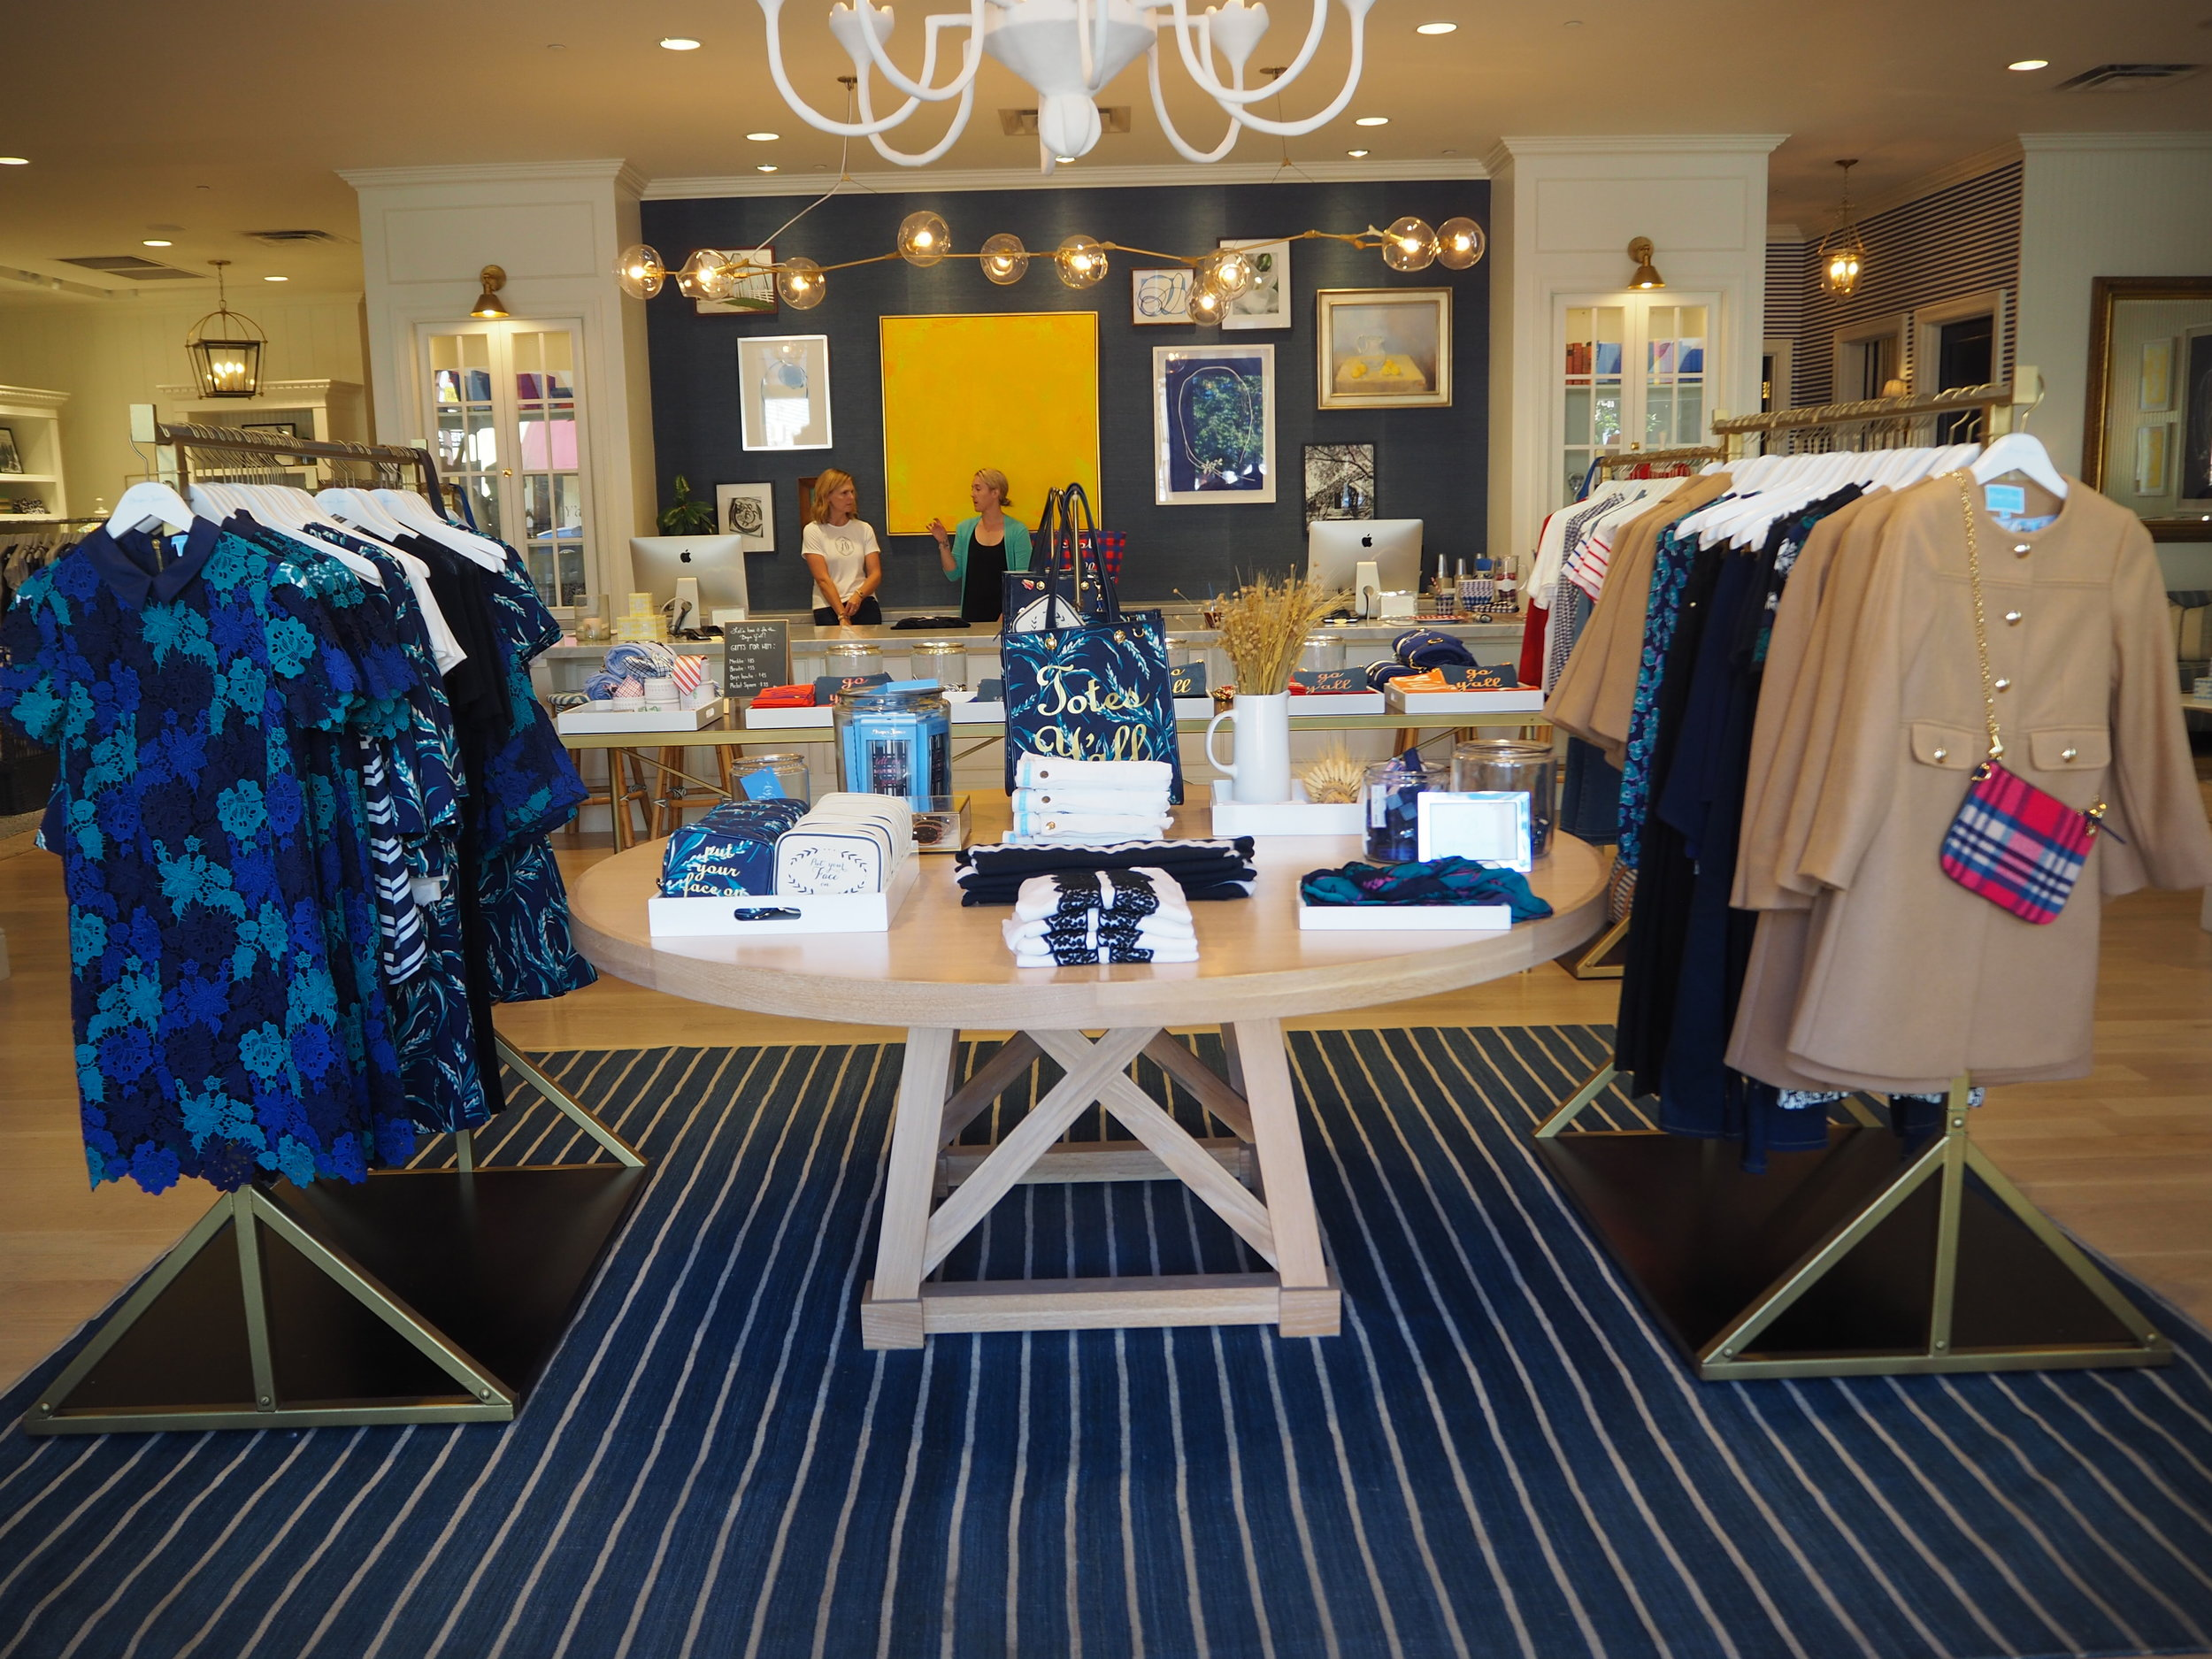 Fashion and homeware at lifestyle brand 'Draper James'  by Reese Witherspoon, in Nashville Tennessee. Click here for more info.